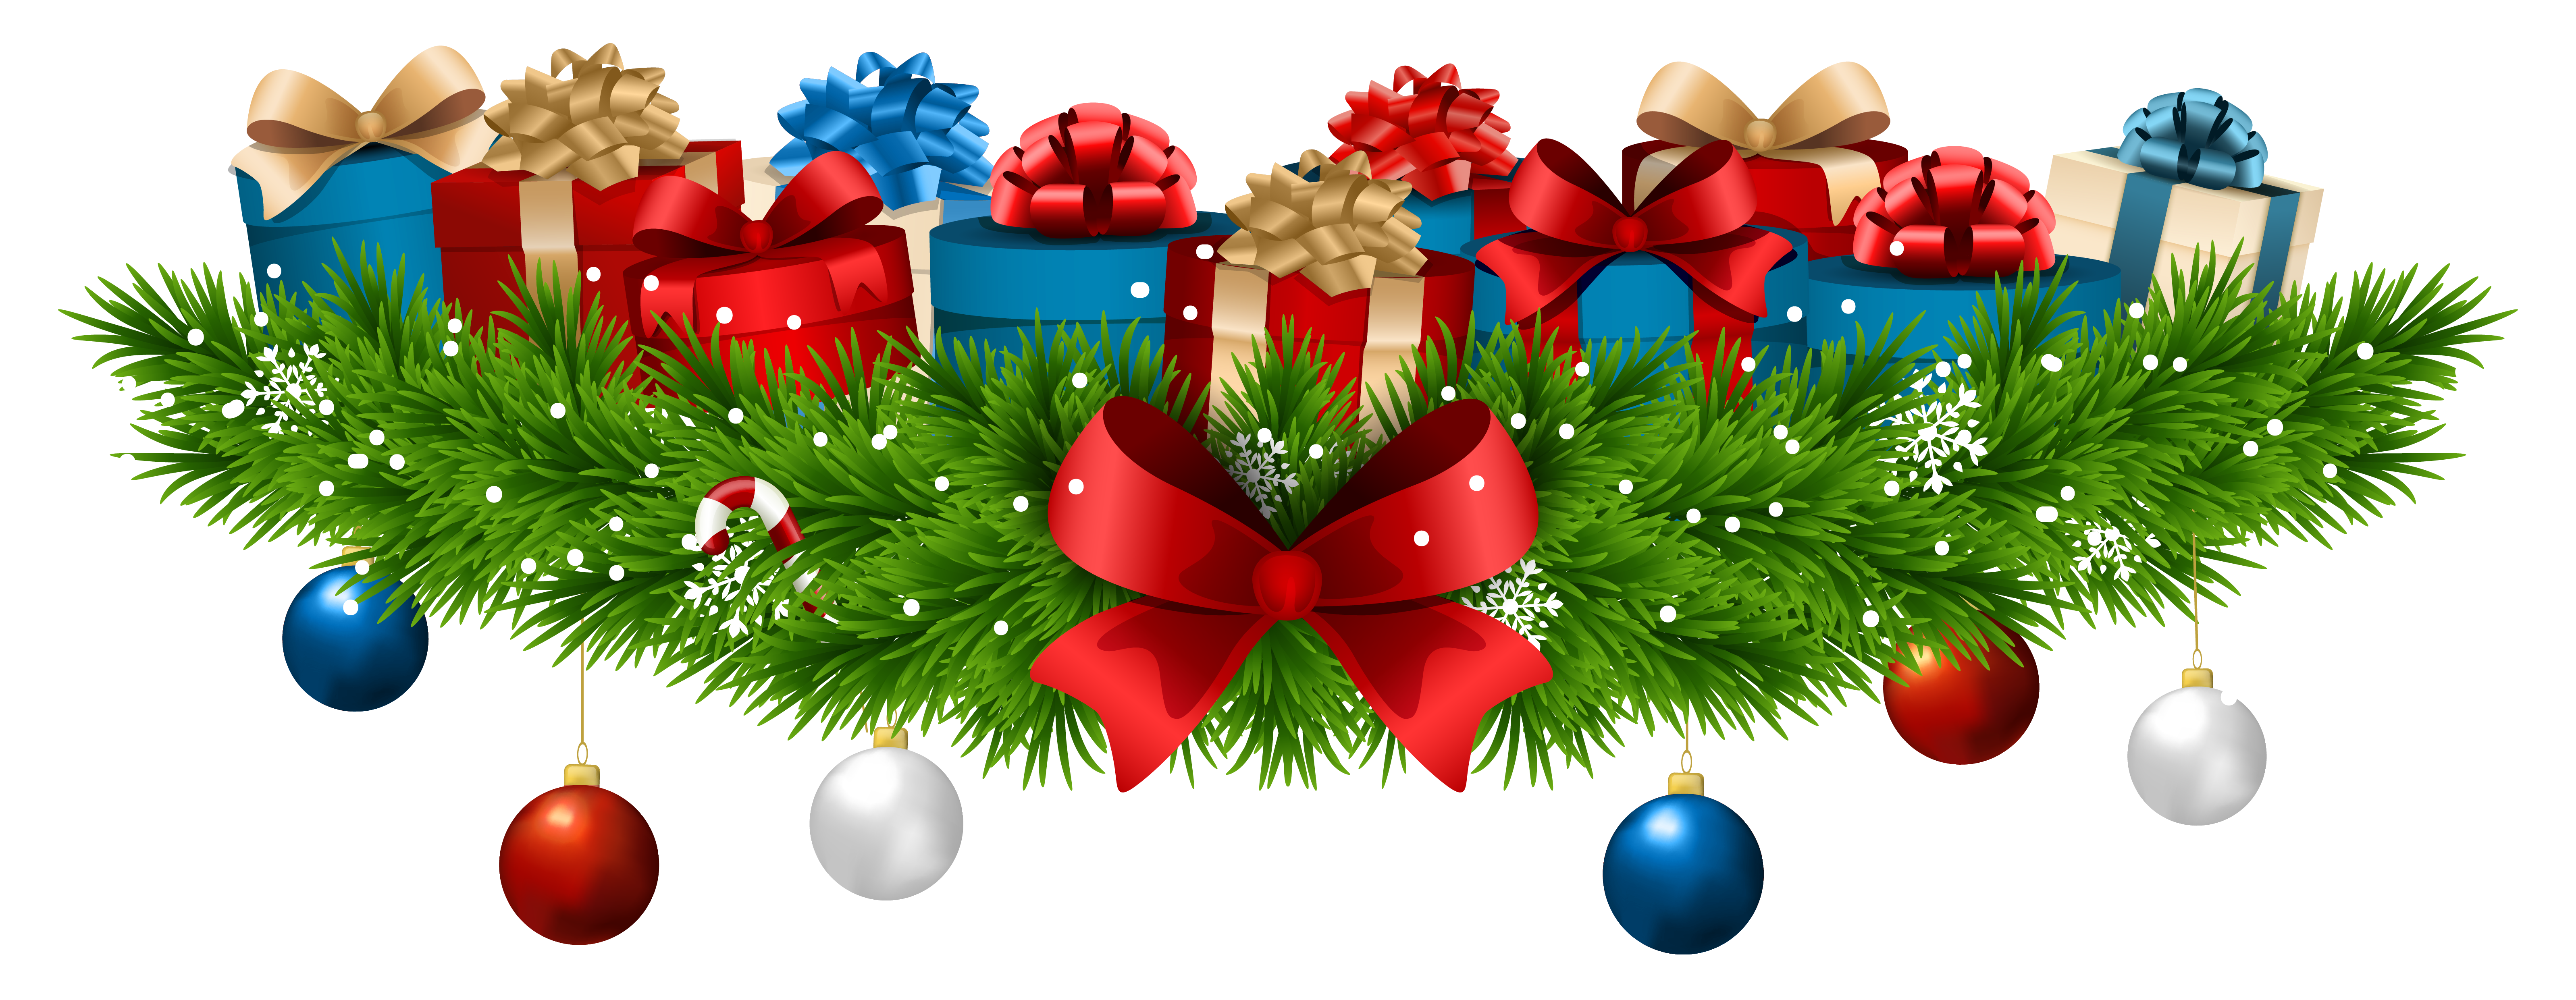 Christmas clipart presents graphic free stock Christmas Decoration with Gifts PNG Clip Art Image | Gallery ... graphic free stock